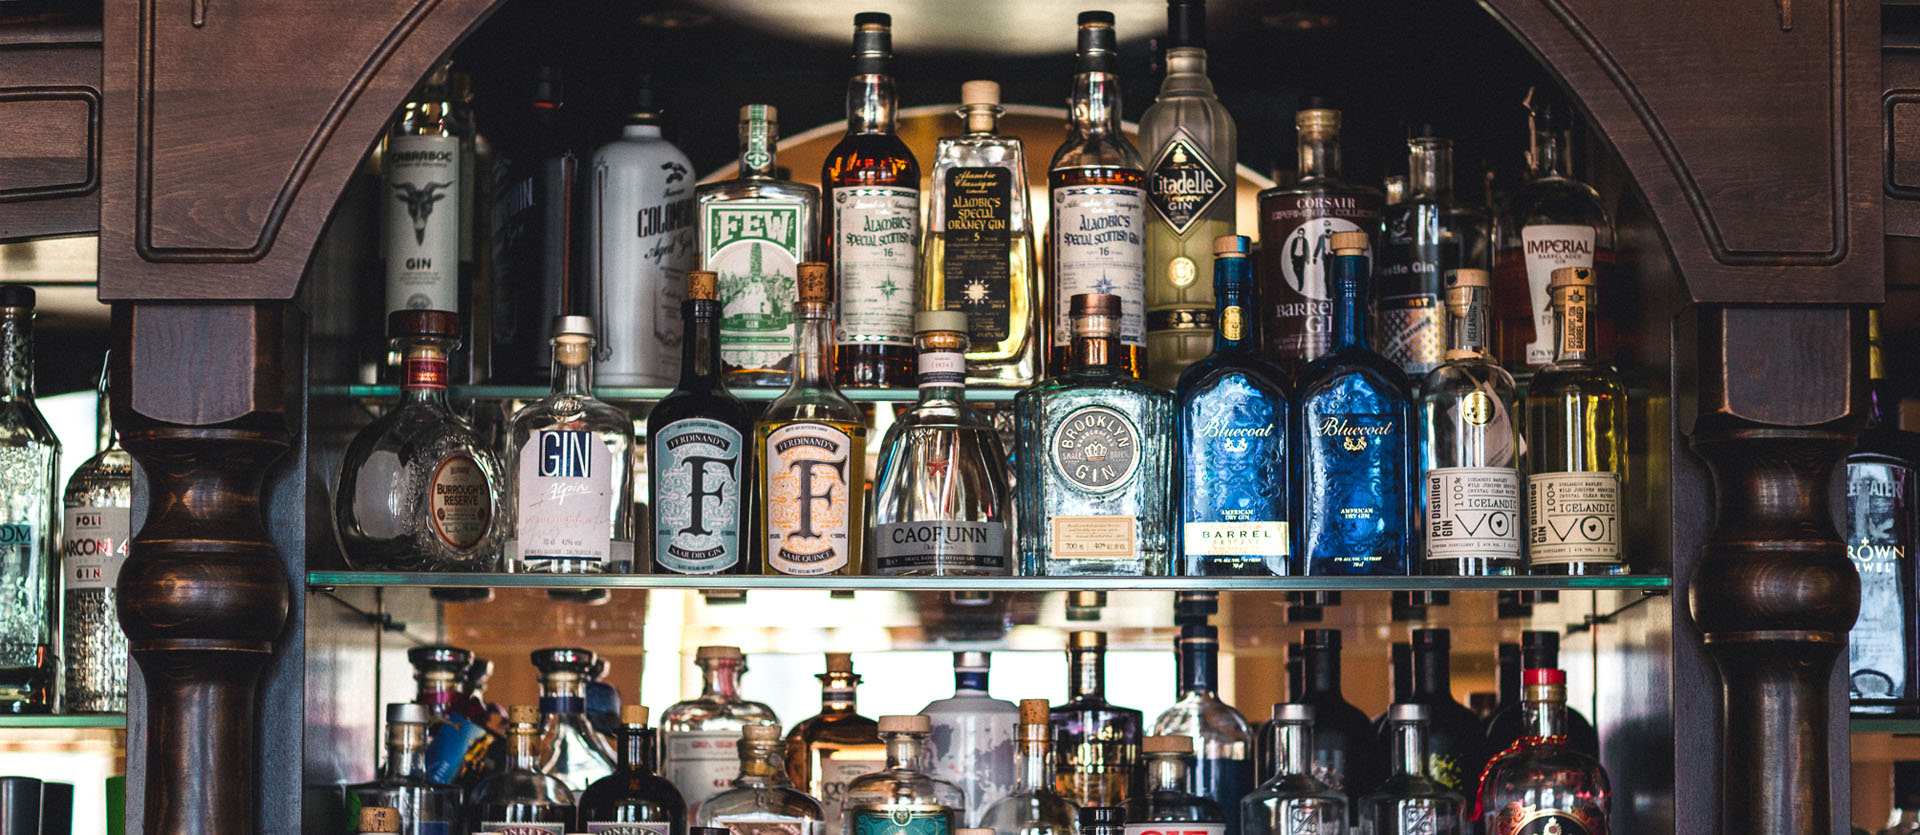 1820 Dresden Gin House Event Room Dresden Gin House